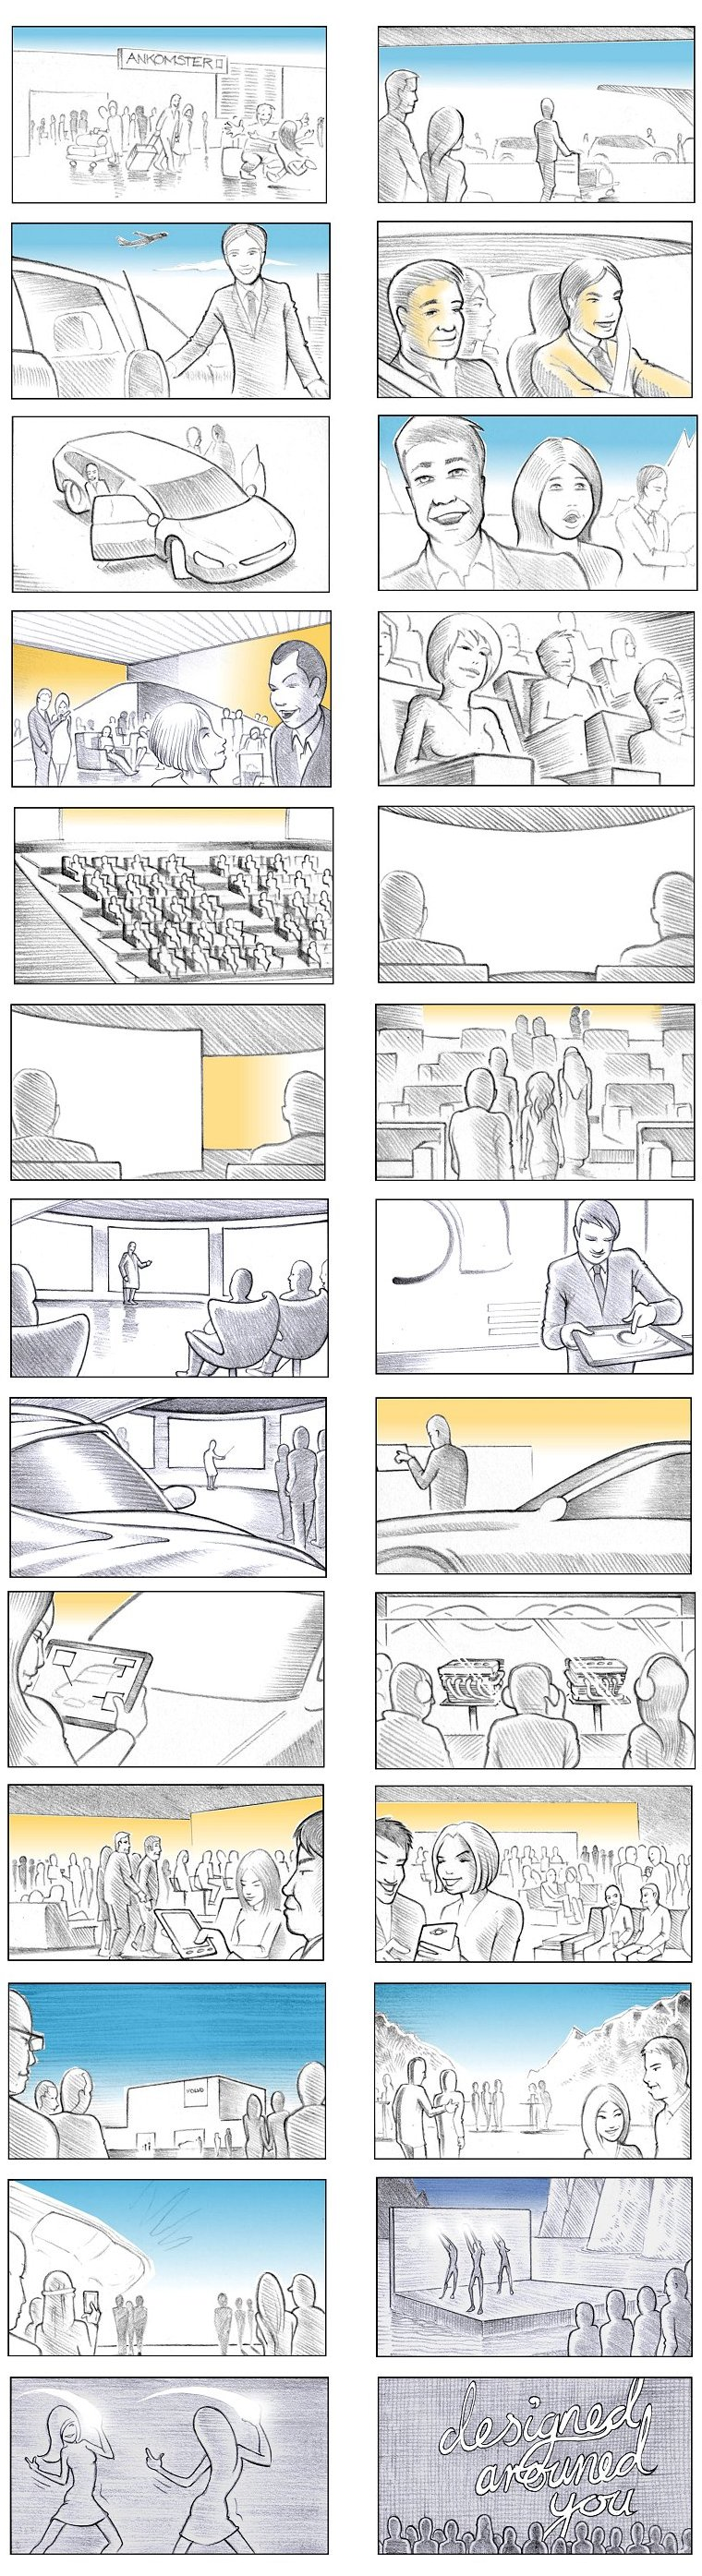 VOLVO EVENT STORYBOARD BY ANDY SPARROW